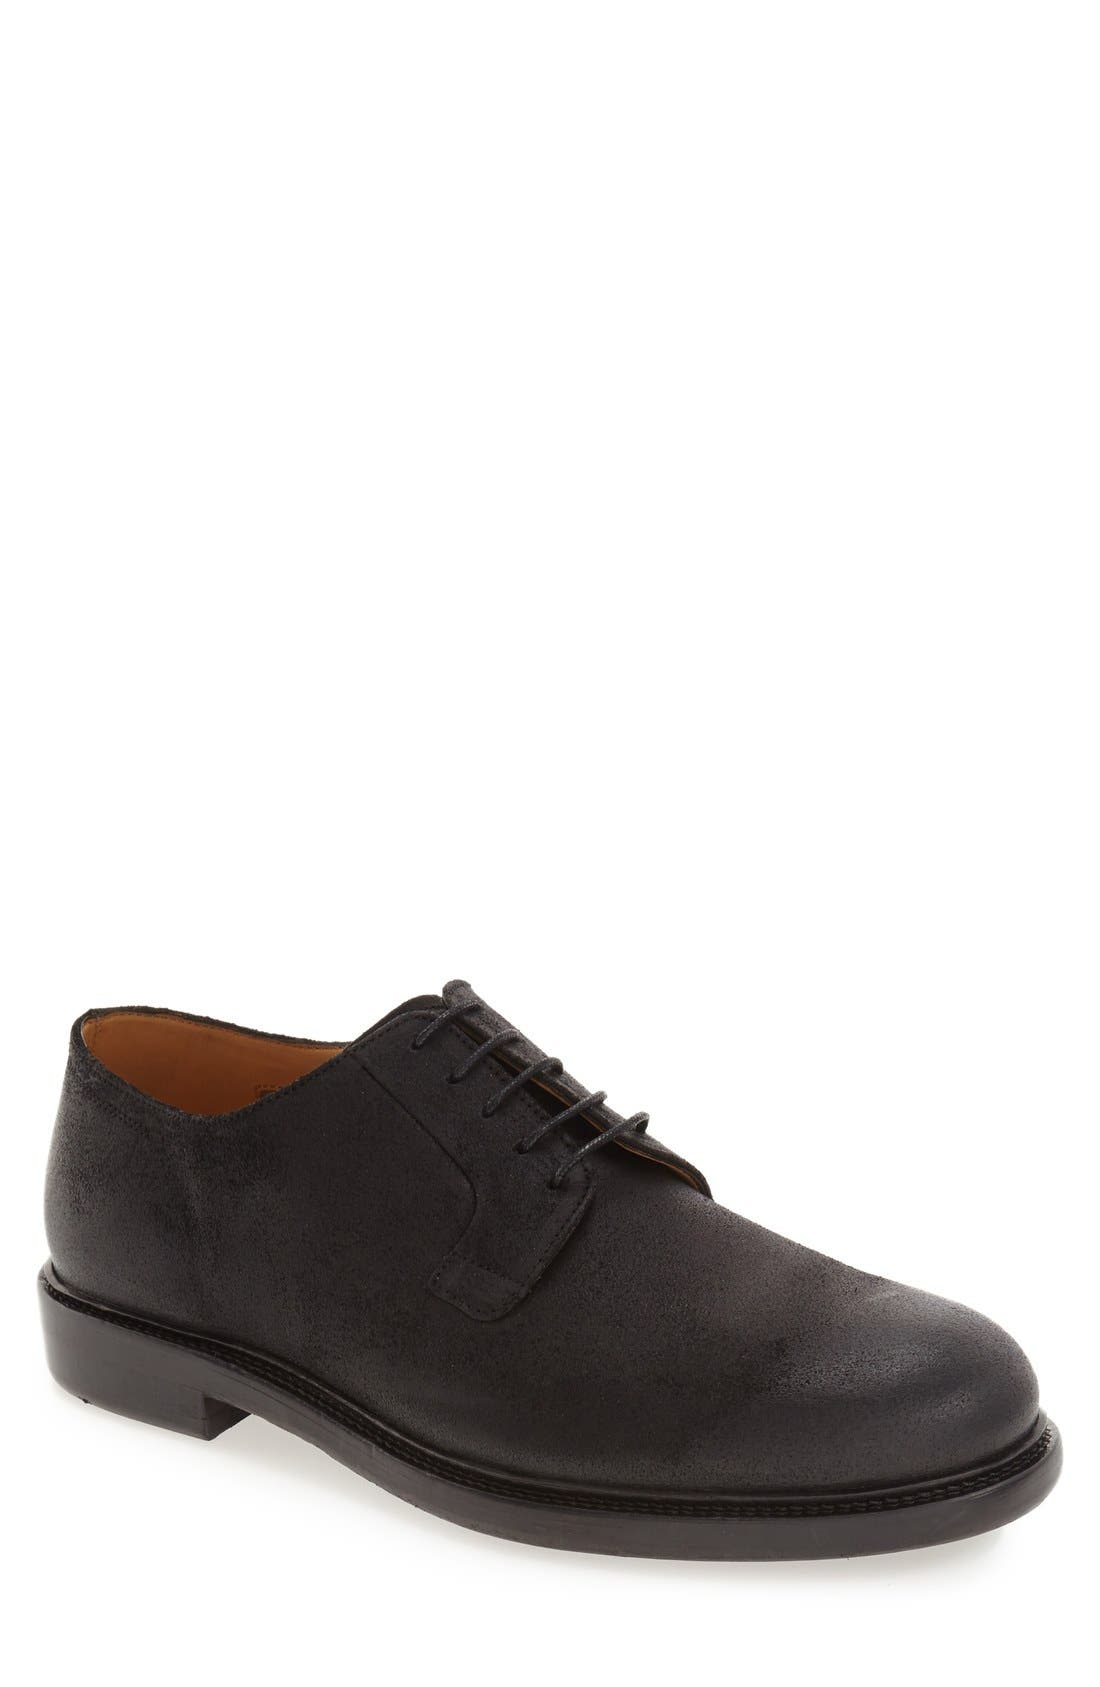 'Samtin' Plain Toe Blucher,                         Main,                         color,